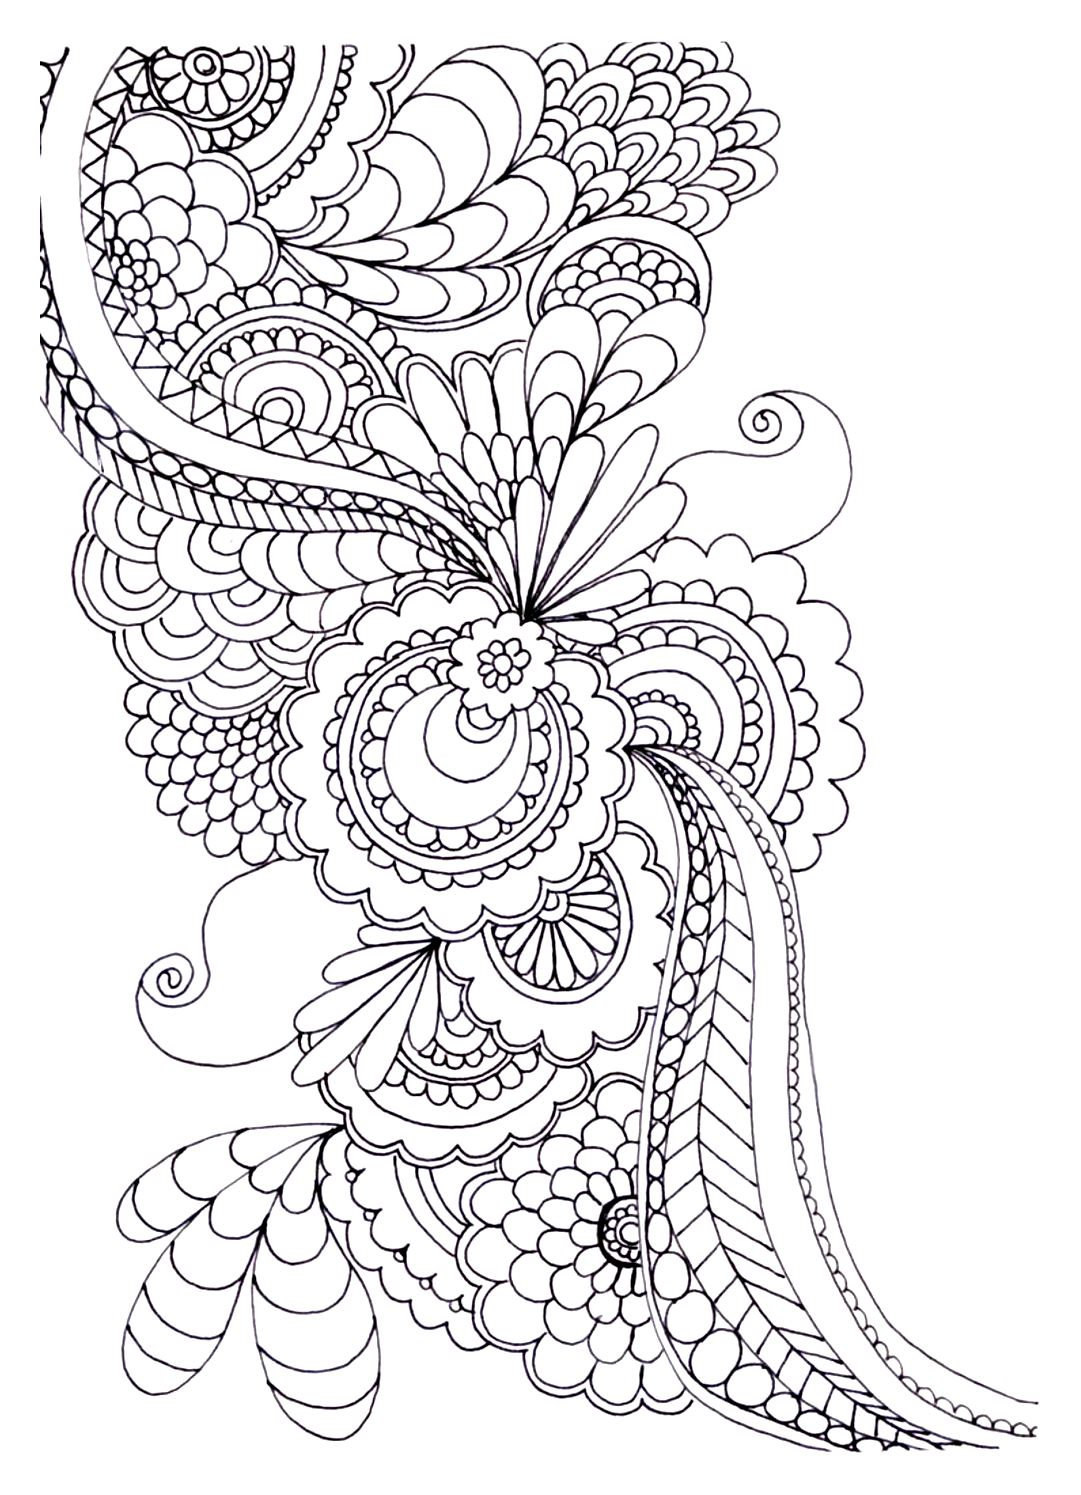 coloring adult pages - photo#11